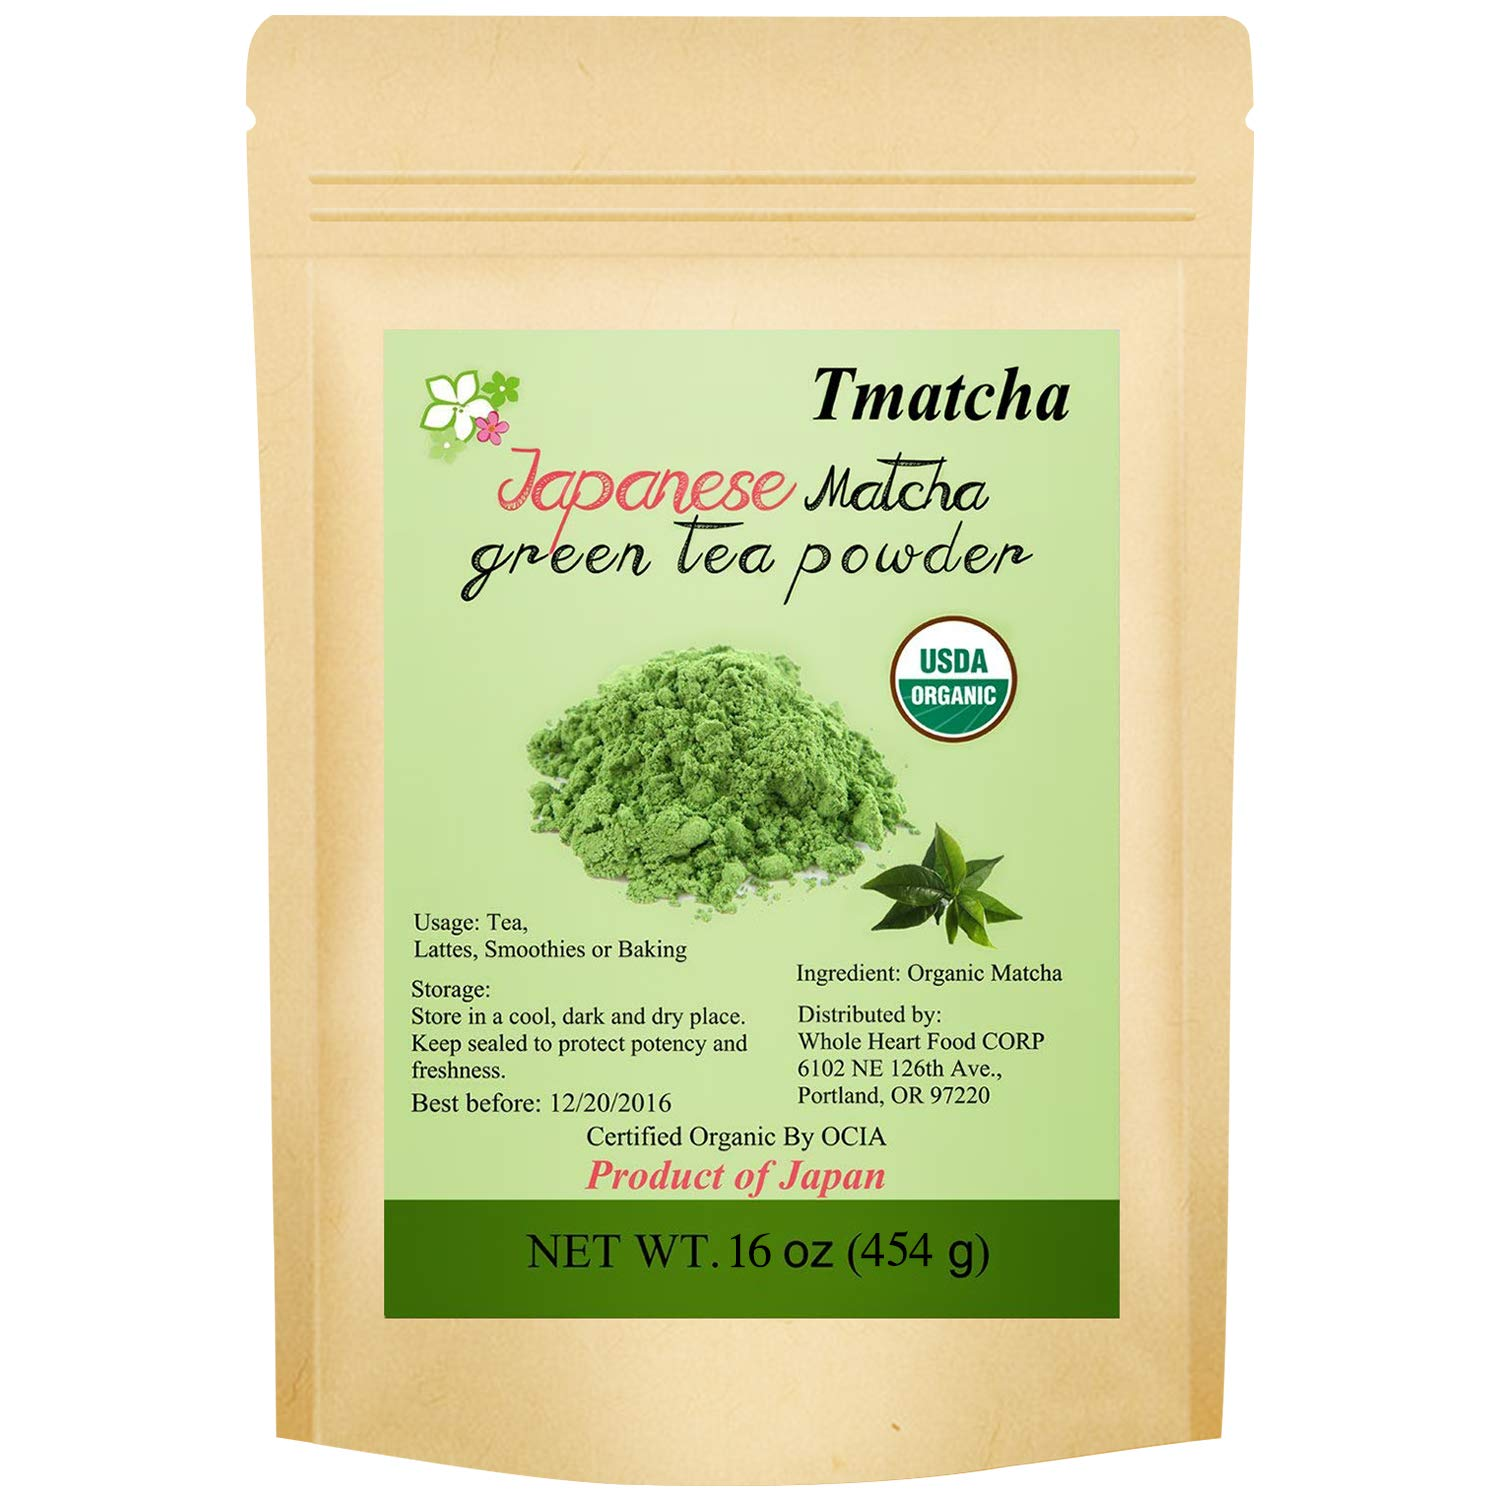 Tmatcha Matcha Green Tea Powder 16oz- USDA Organic - Japanese Matcha - Culinary Grade Matcha Powder 454g